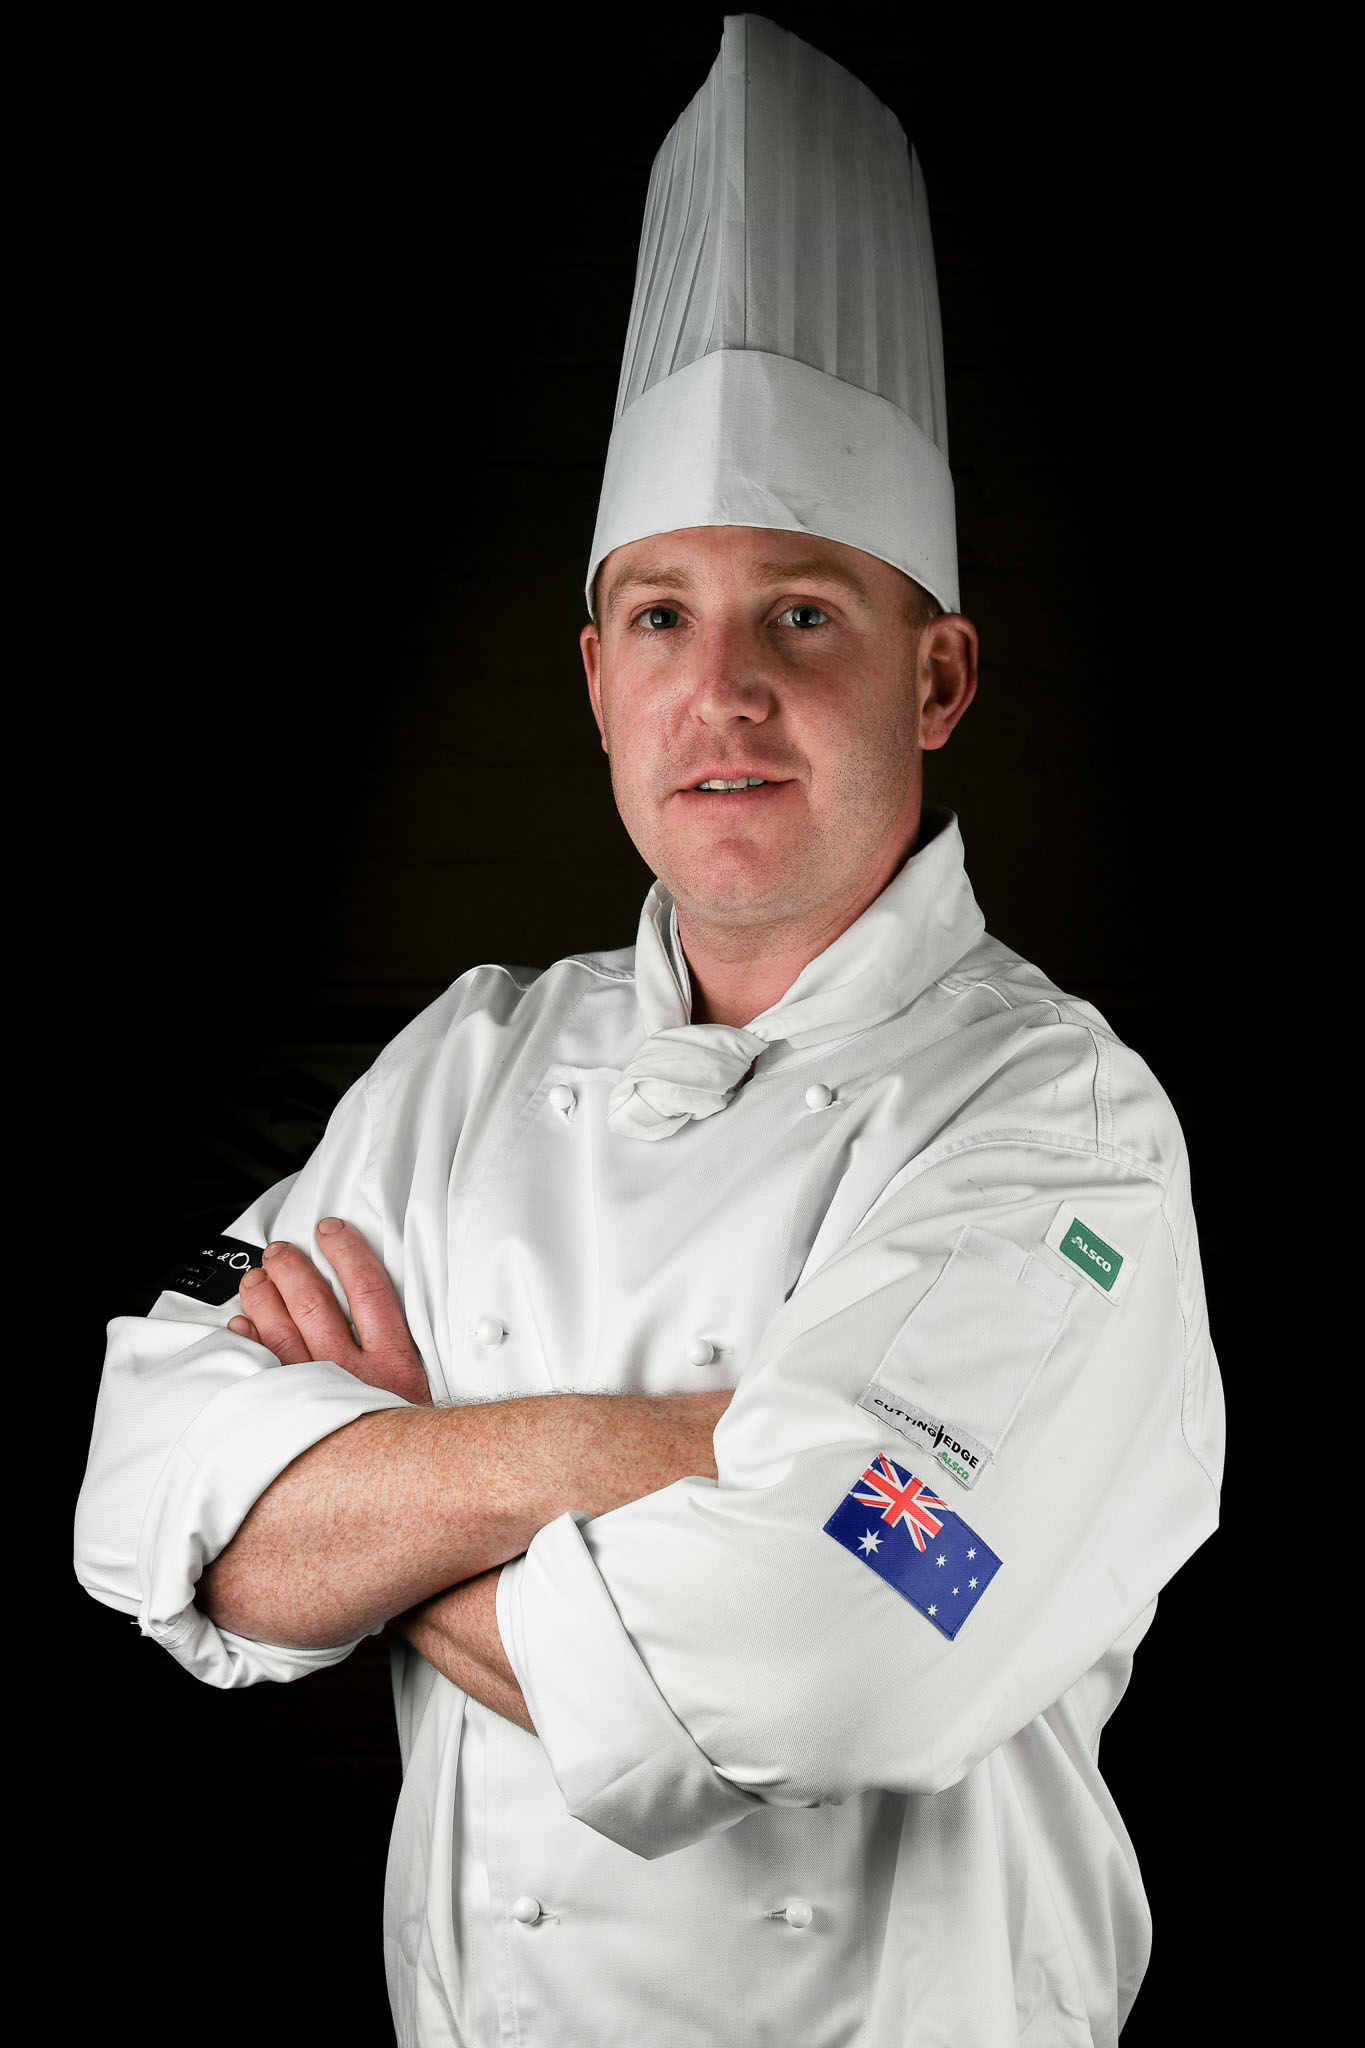 Melbourne, 30 May 2017 - Michael Cole of the Georgie Bass Café & Cookery in Flinders poses for a photograph at the Australian selection trials of the Bocuse d'Or culinary competition held during the Food Service Australia show at the Royal Exhibition Building in Melbourne, Australia. Photo Sydney Low